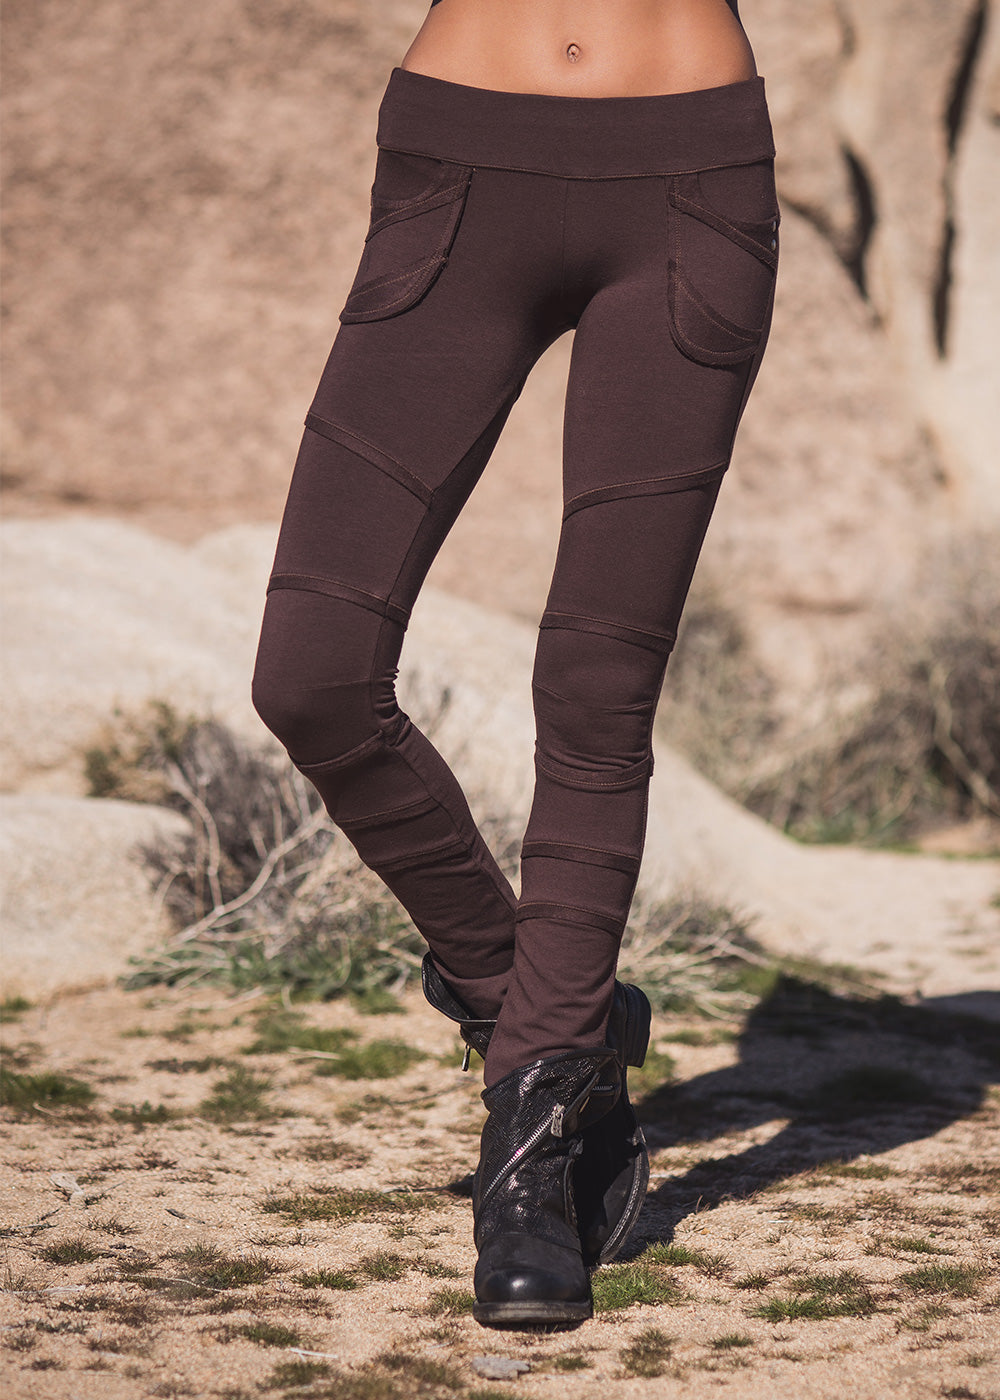 Method Pant- Black (Bamboo & Organic Cotton)